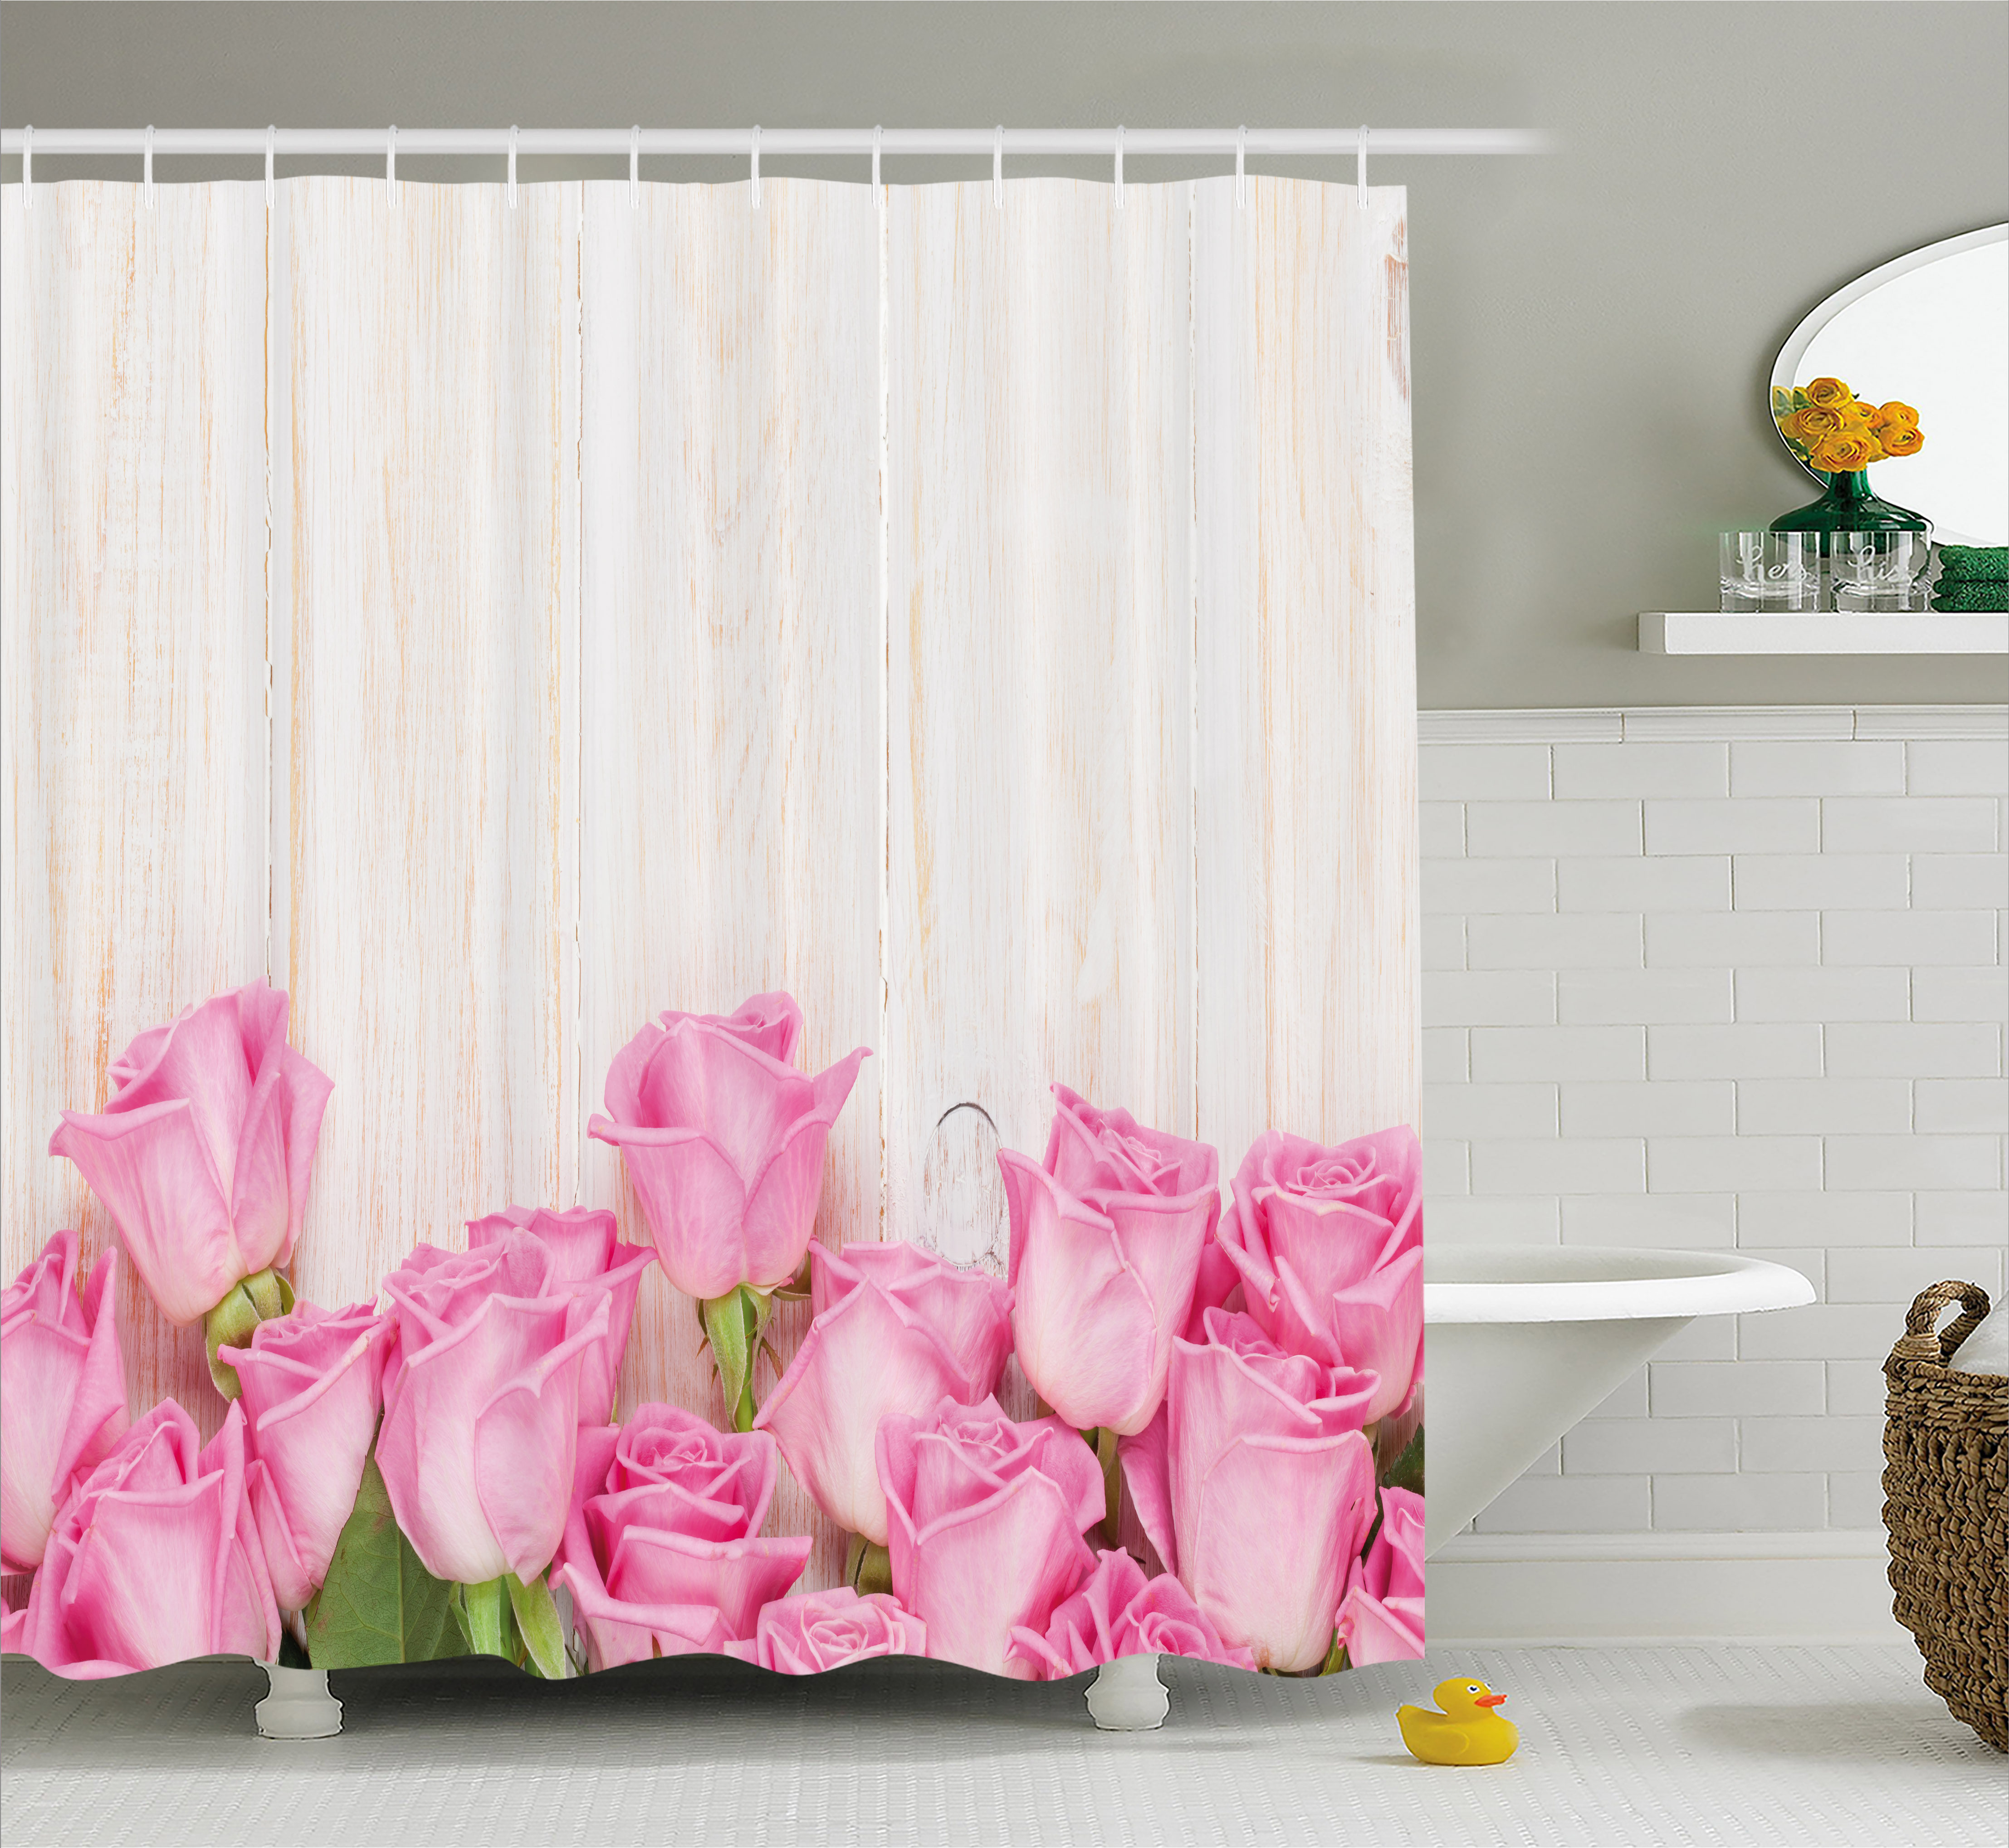 Rose Shower Curtain, Valentine's Day Celebration Inspired Composition Flowers on Wood Planks Print, Fabric Bathroom Set with Hooks, 69W X 84L Inches Extra Long, Pink Green Cream, by Ambesonne